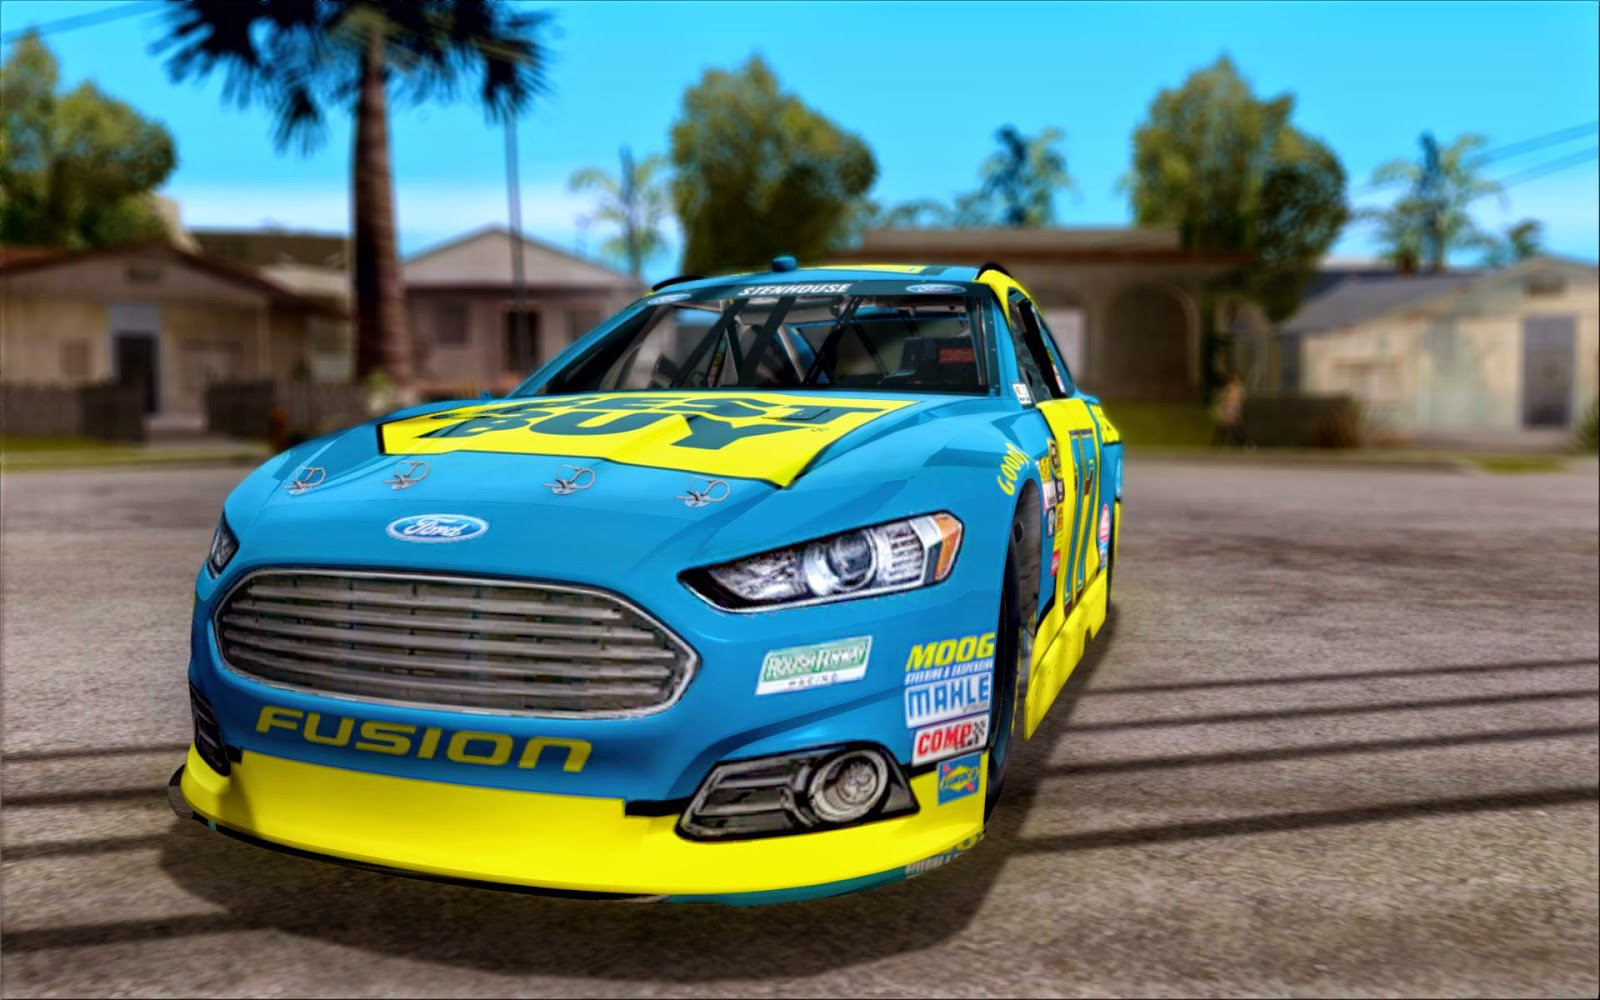 Grand Theft Auto San Andreas Nascar Rel Nascar Ford